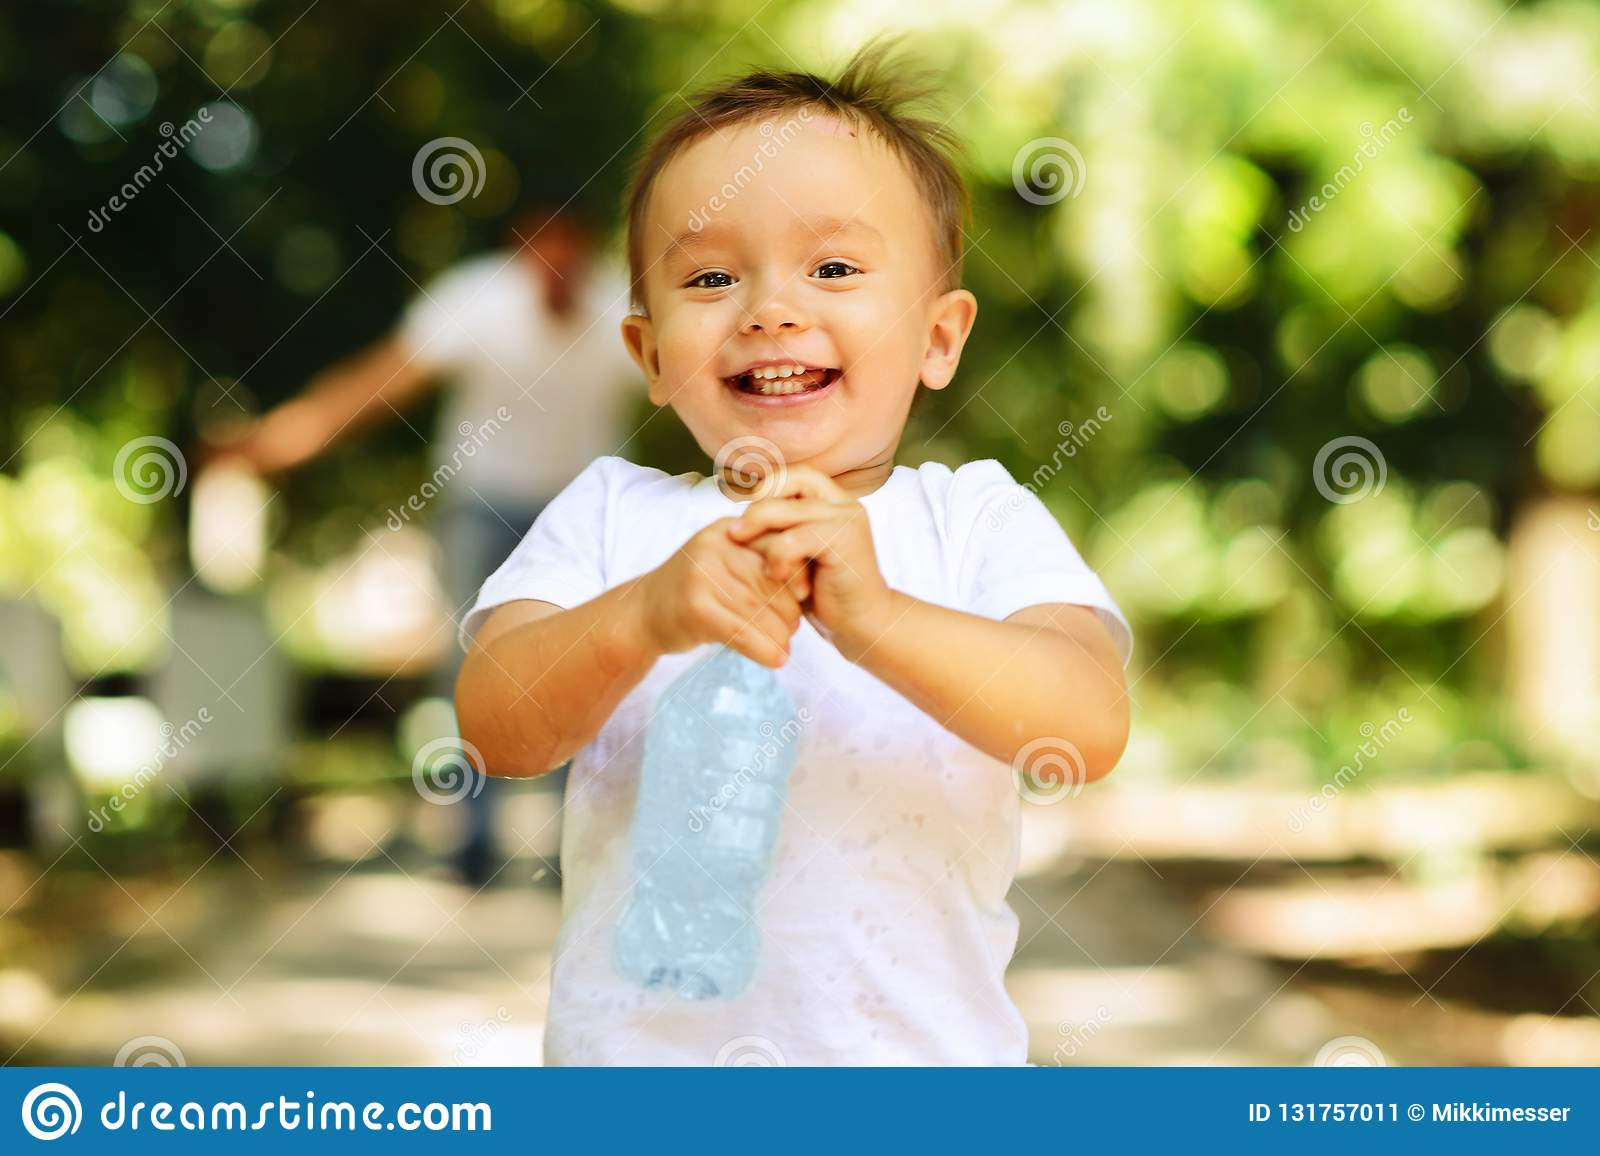 Laughing little boy running outdoor with a bottle of a clear drinking water, his father is blurred in the background. Importance